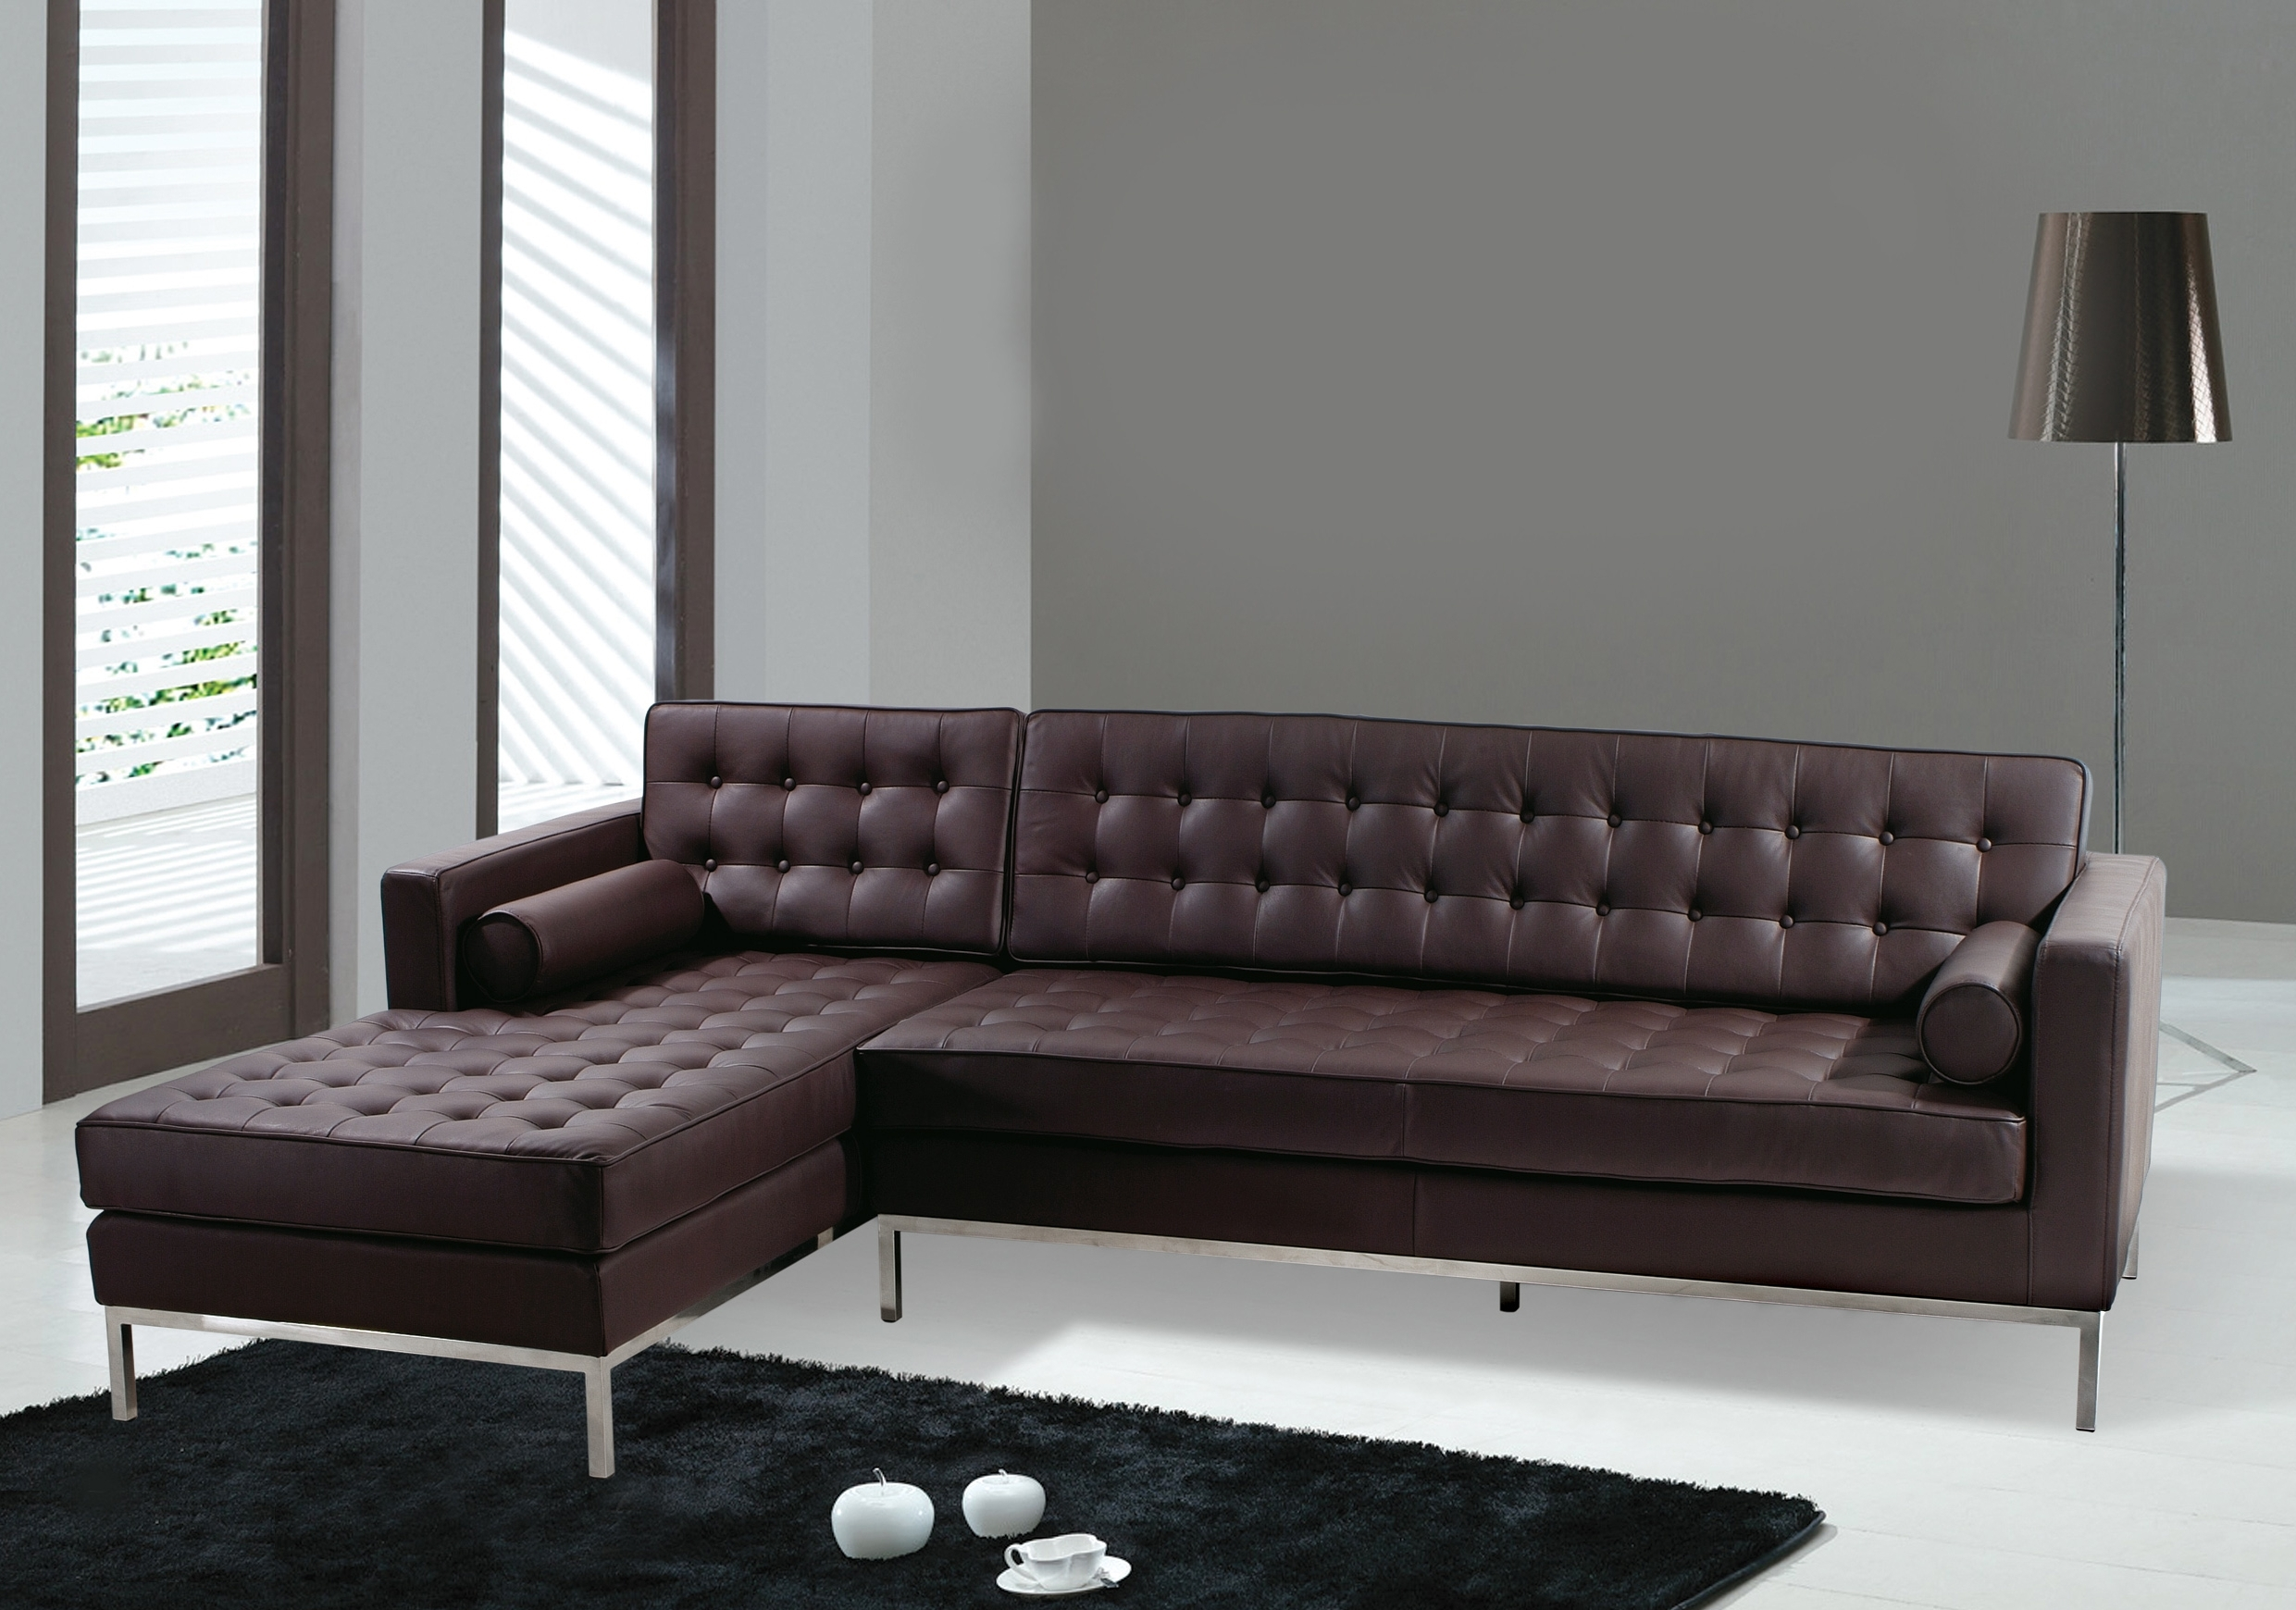 Cheapest Sectional Couches Within Clearance Sectional Sofas (View 13 of 20)